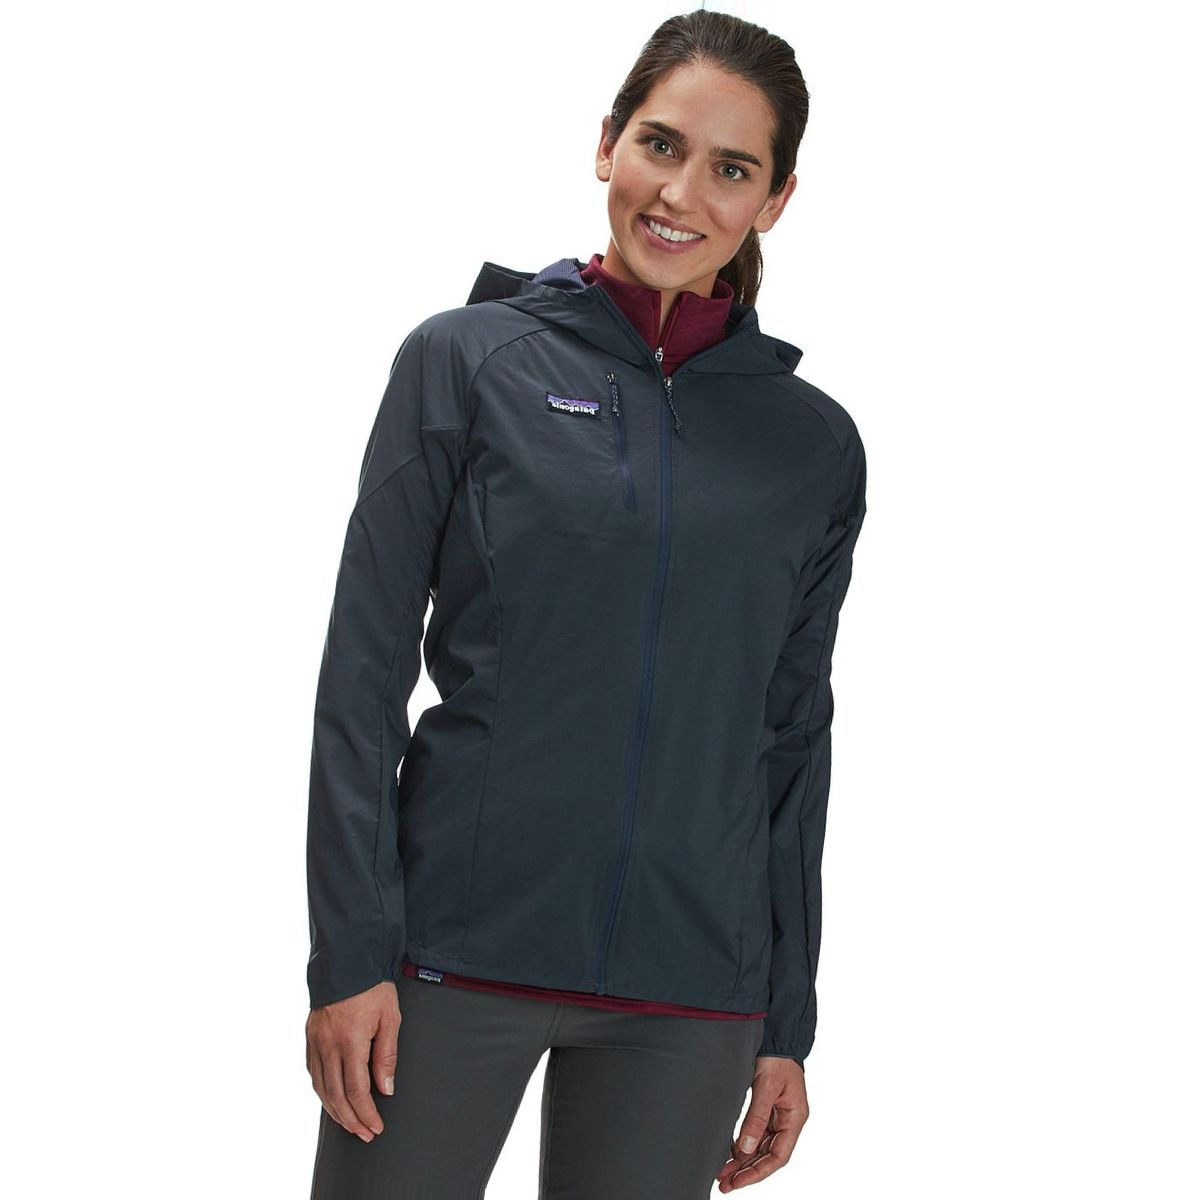 Patagonia Houdini Air Jacket - Women's